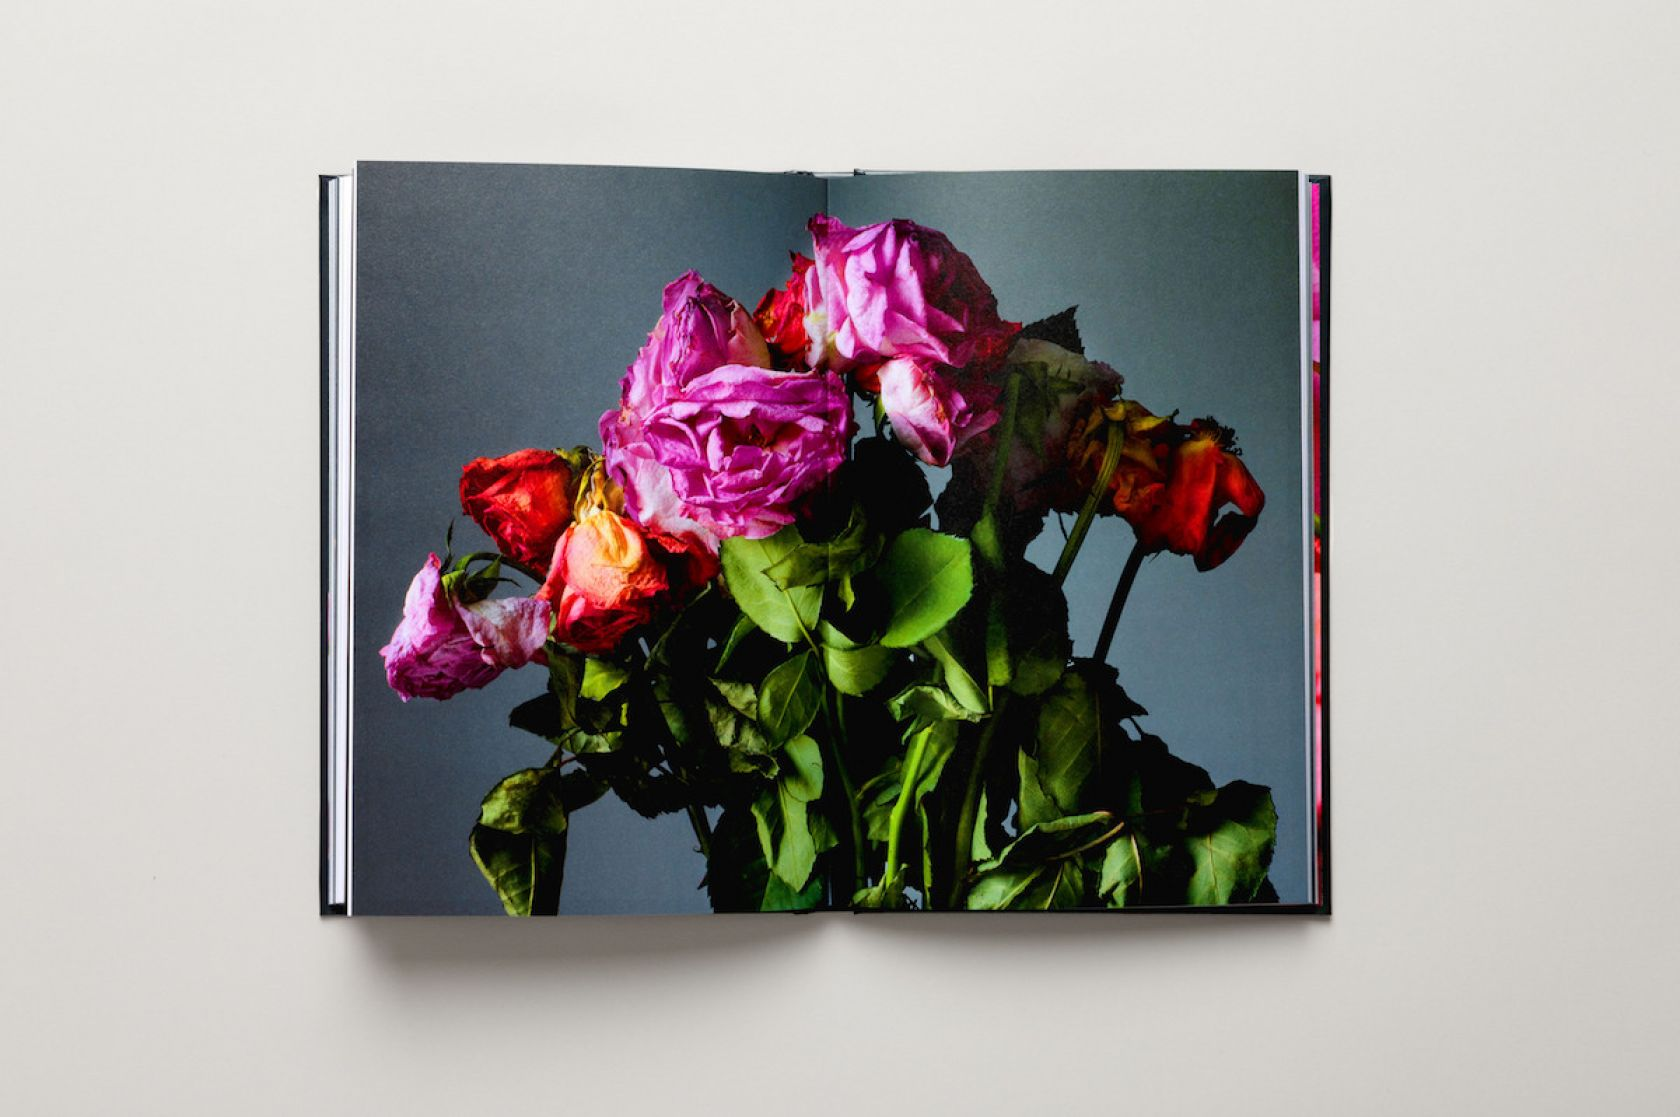 Rankin launches new isolation-themed photography collection to help care workers